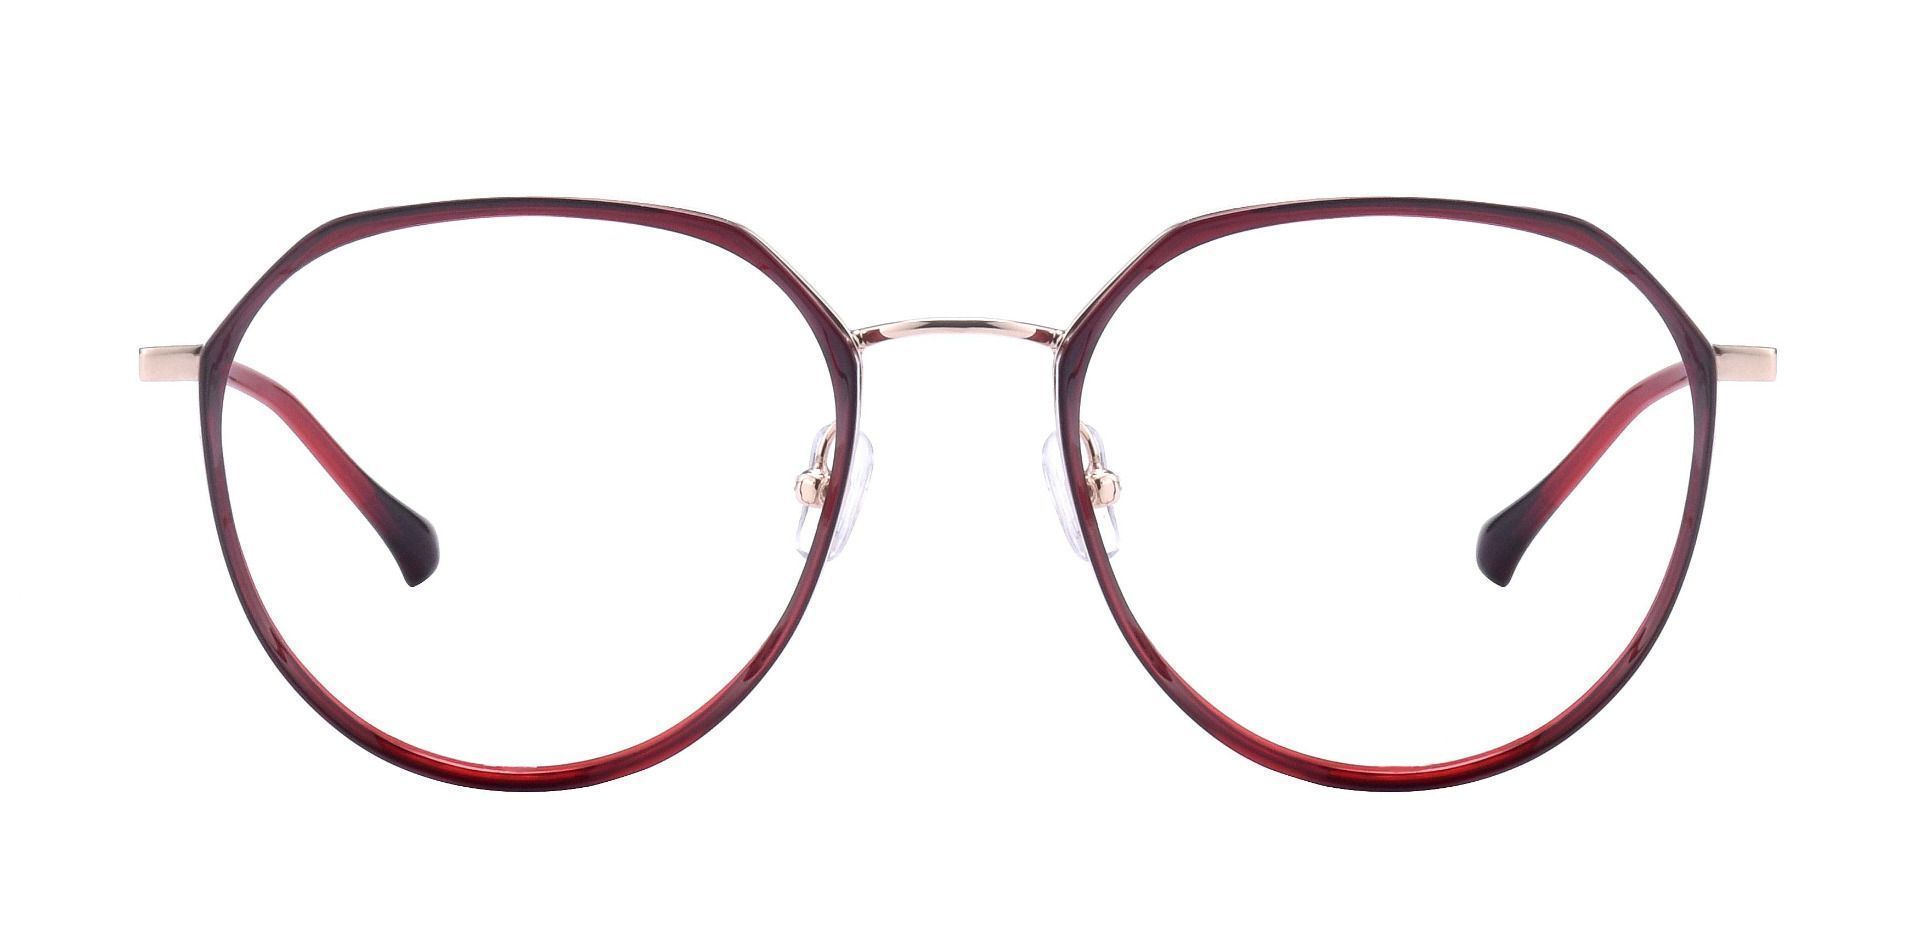 Yorke Geometric Prescription Glasses - Wine/rosegold